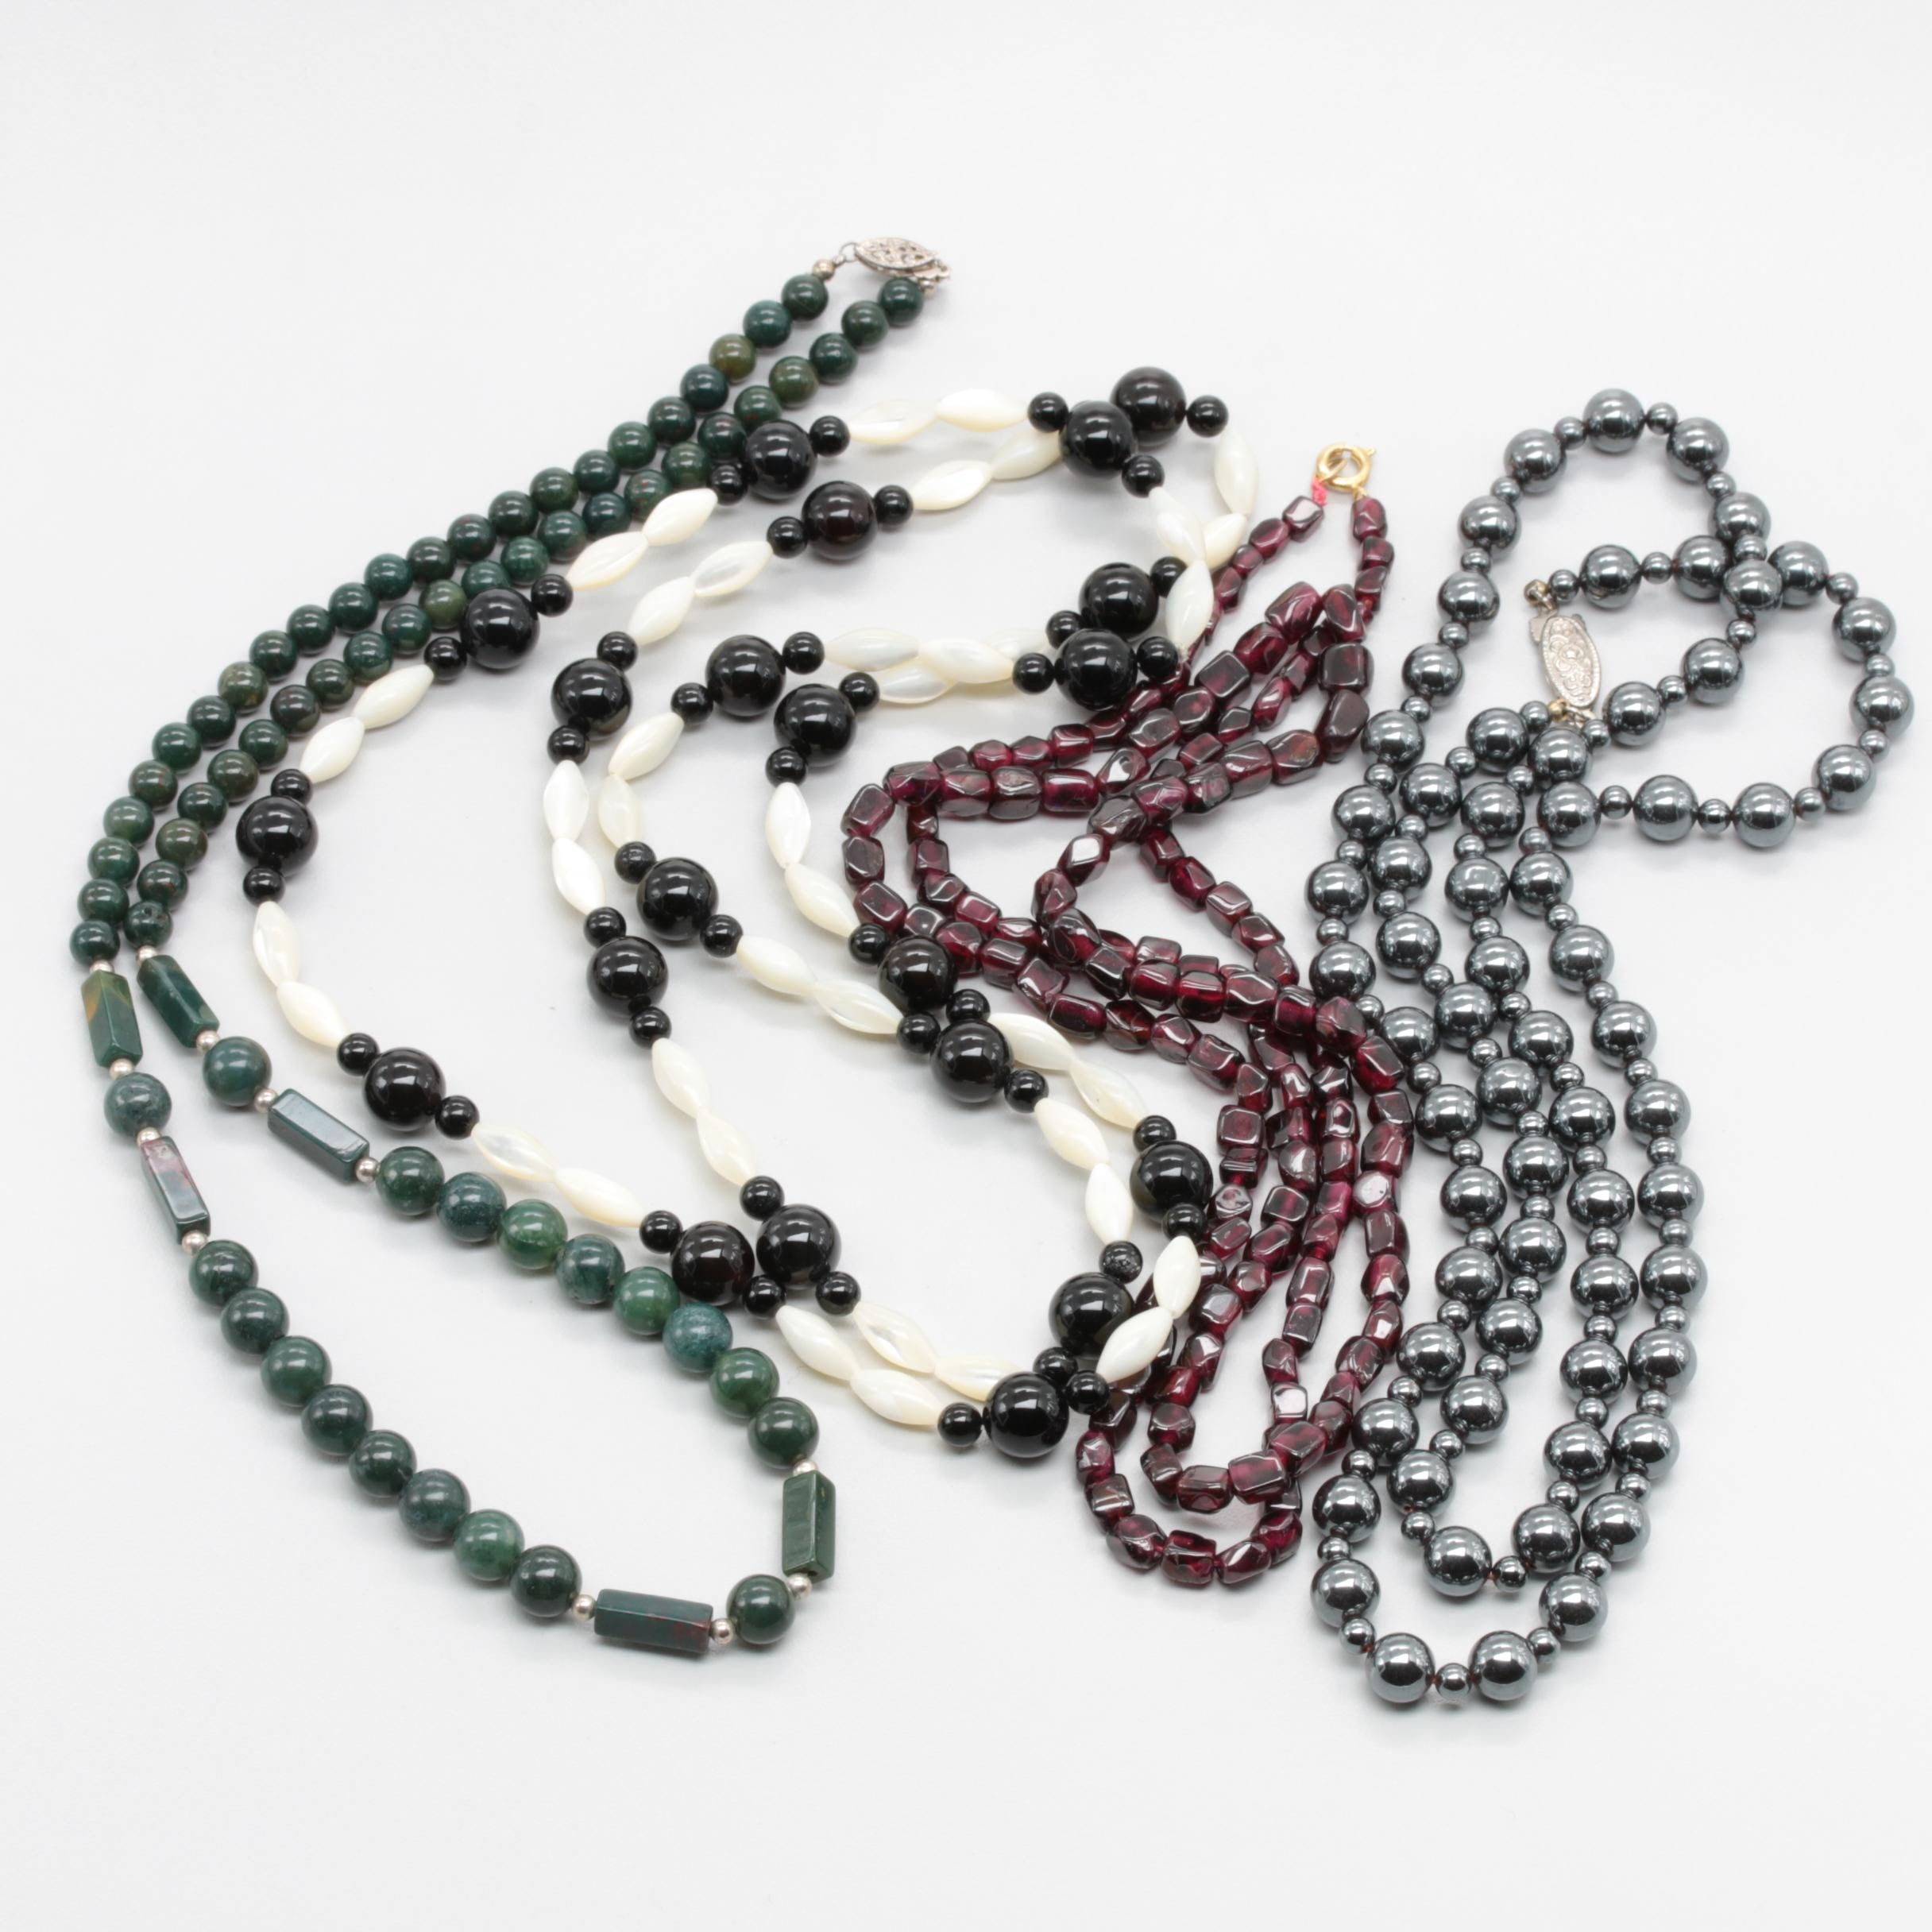 Collection of Necklaces Including Black Onyx, Moss Agate, and Mother of Pearl